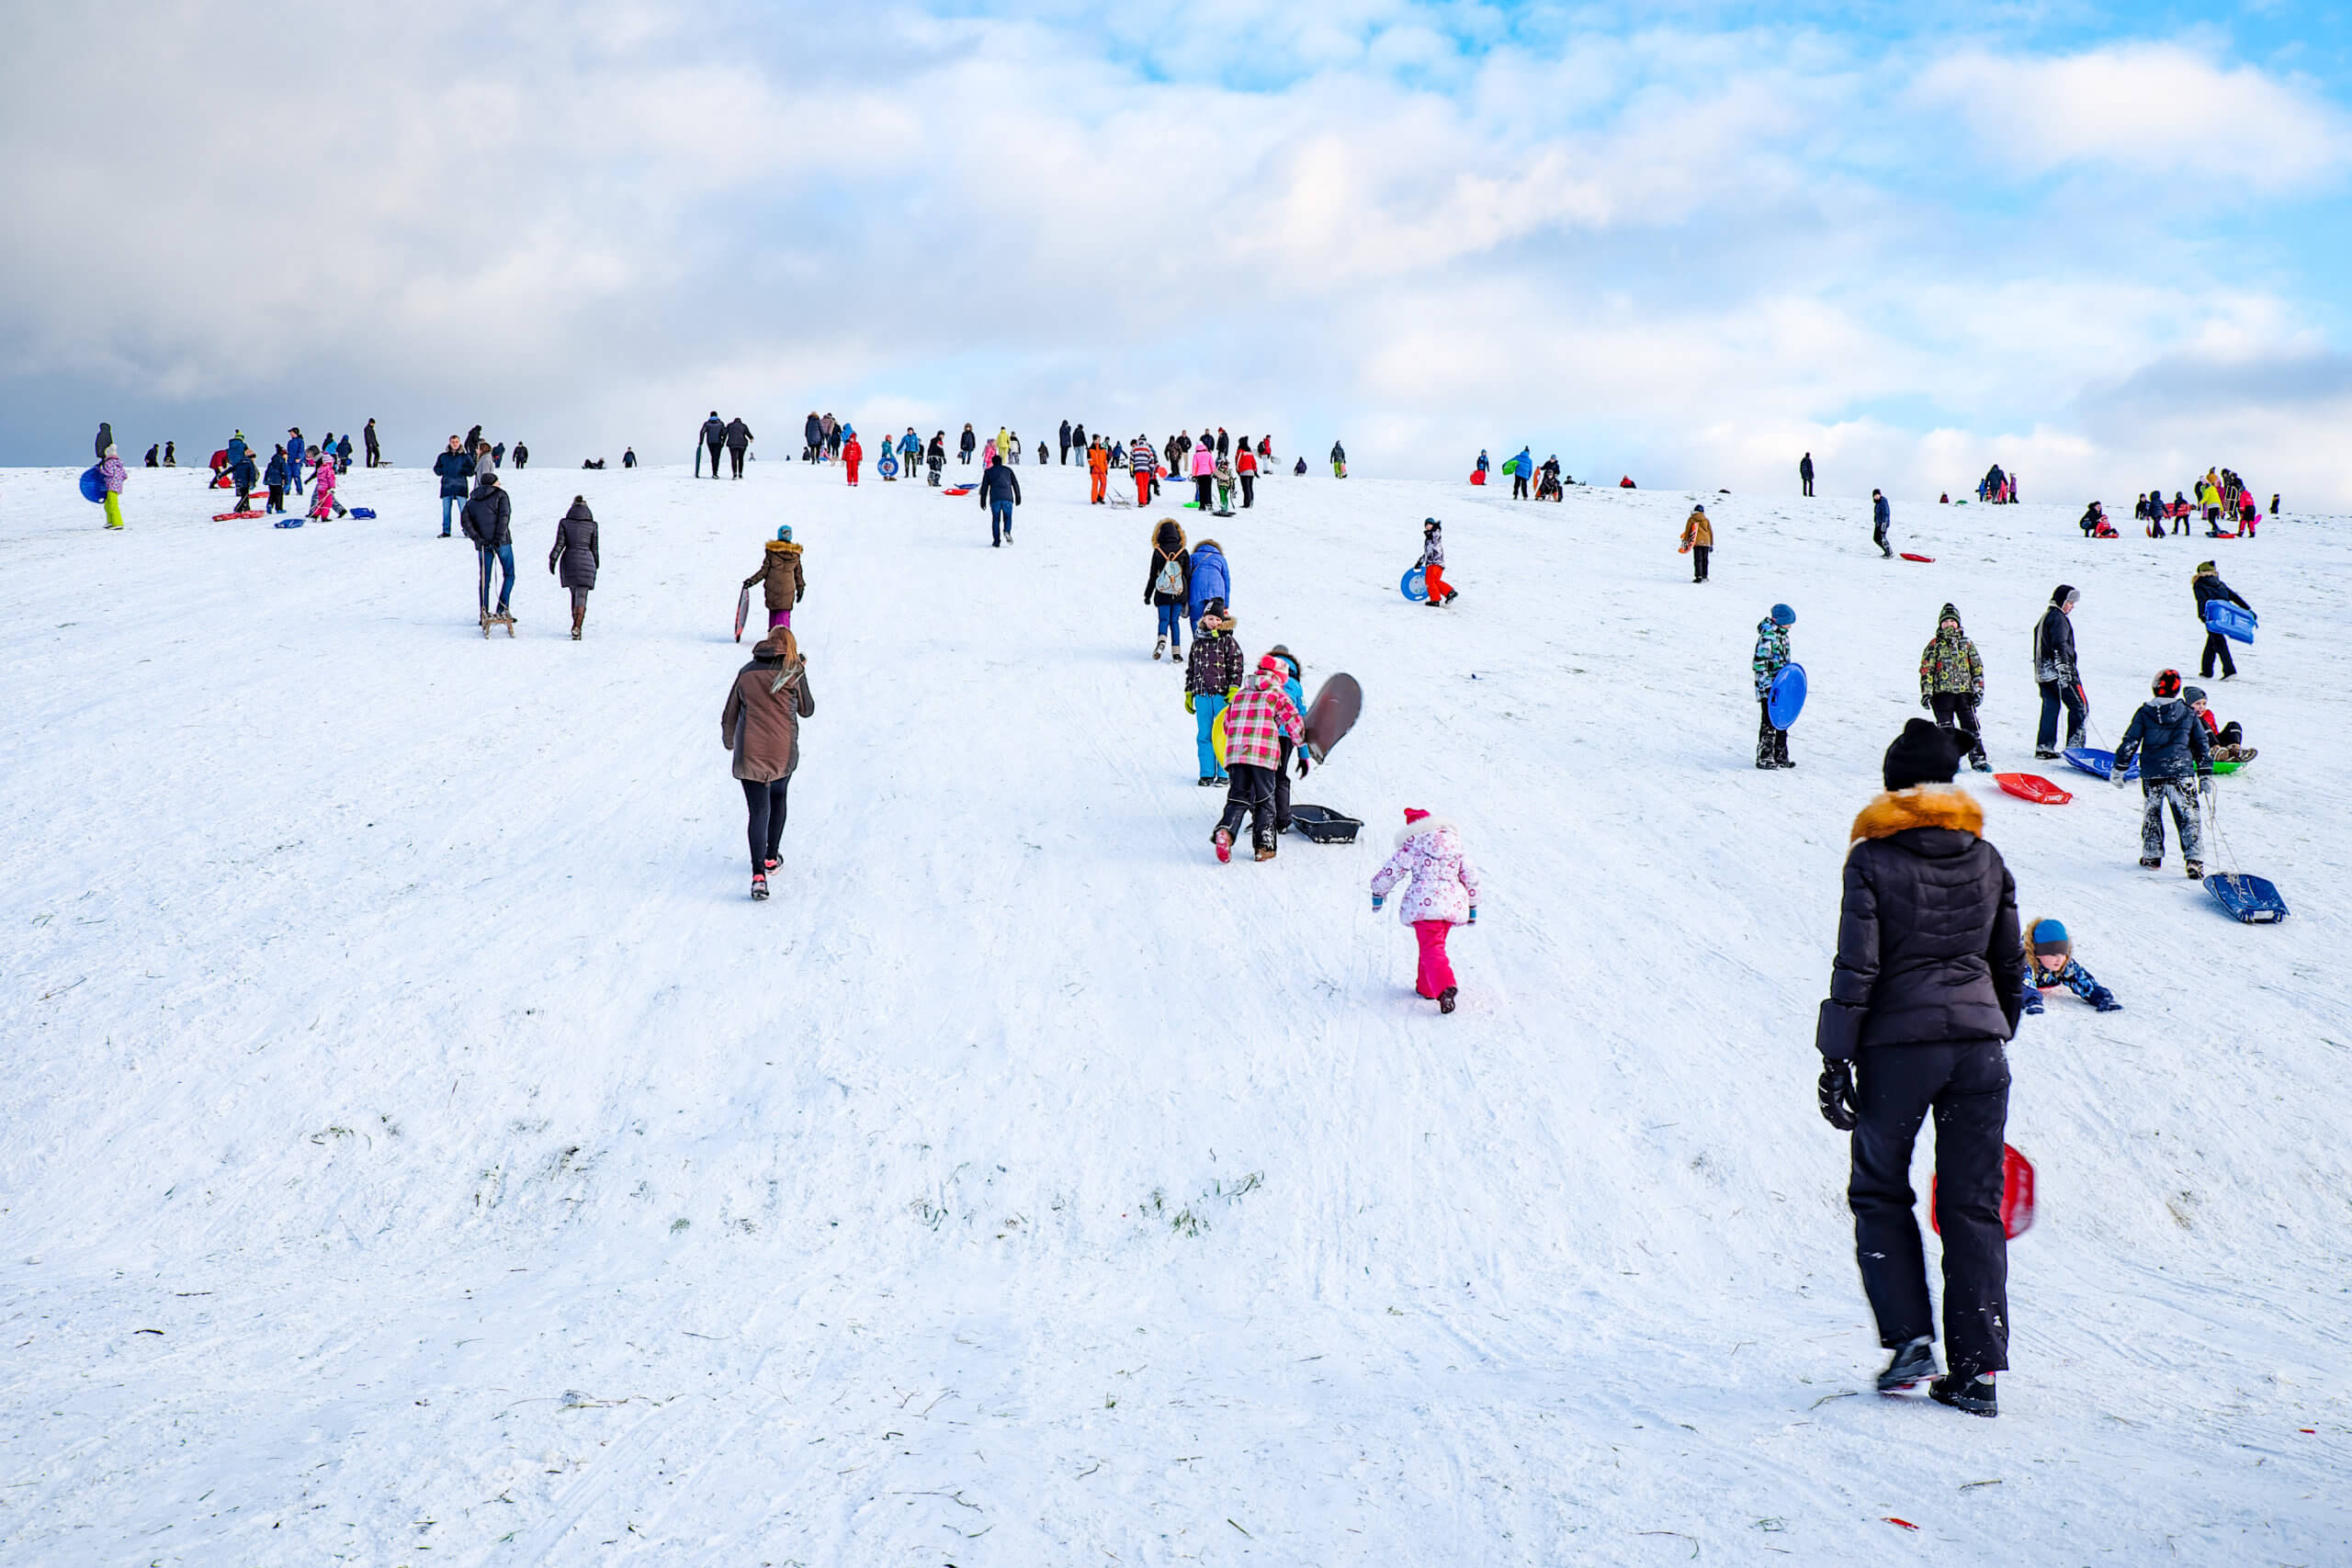 Snow Sledding Hill In A City Is Joy For Children And Adults